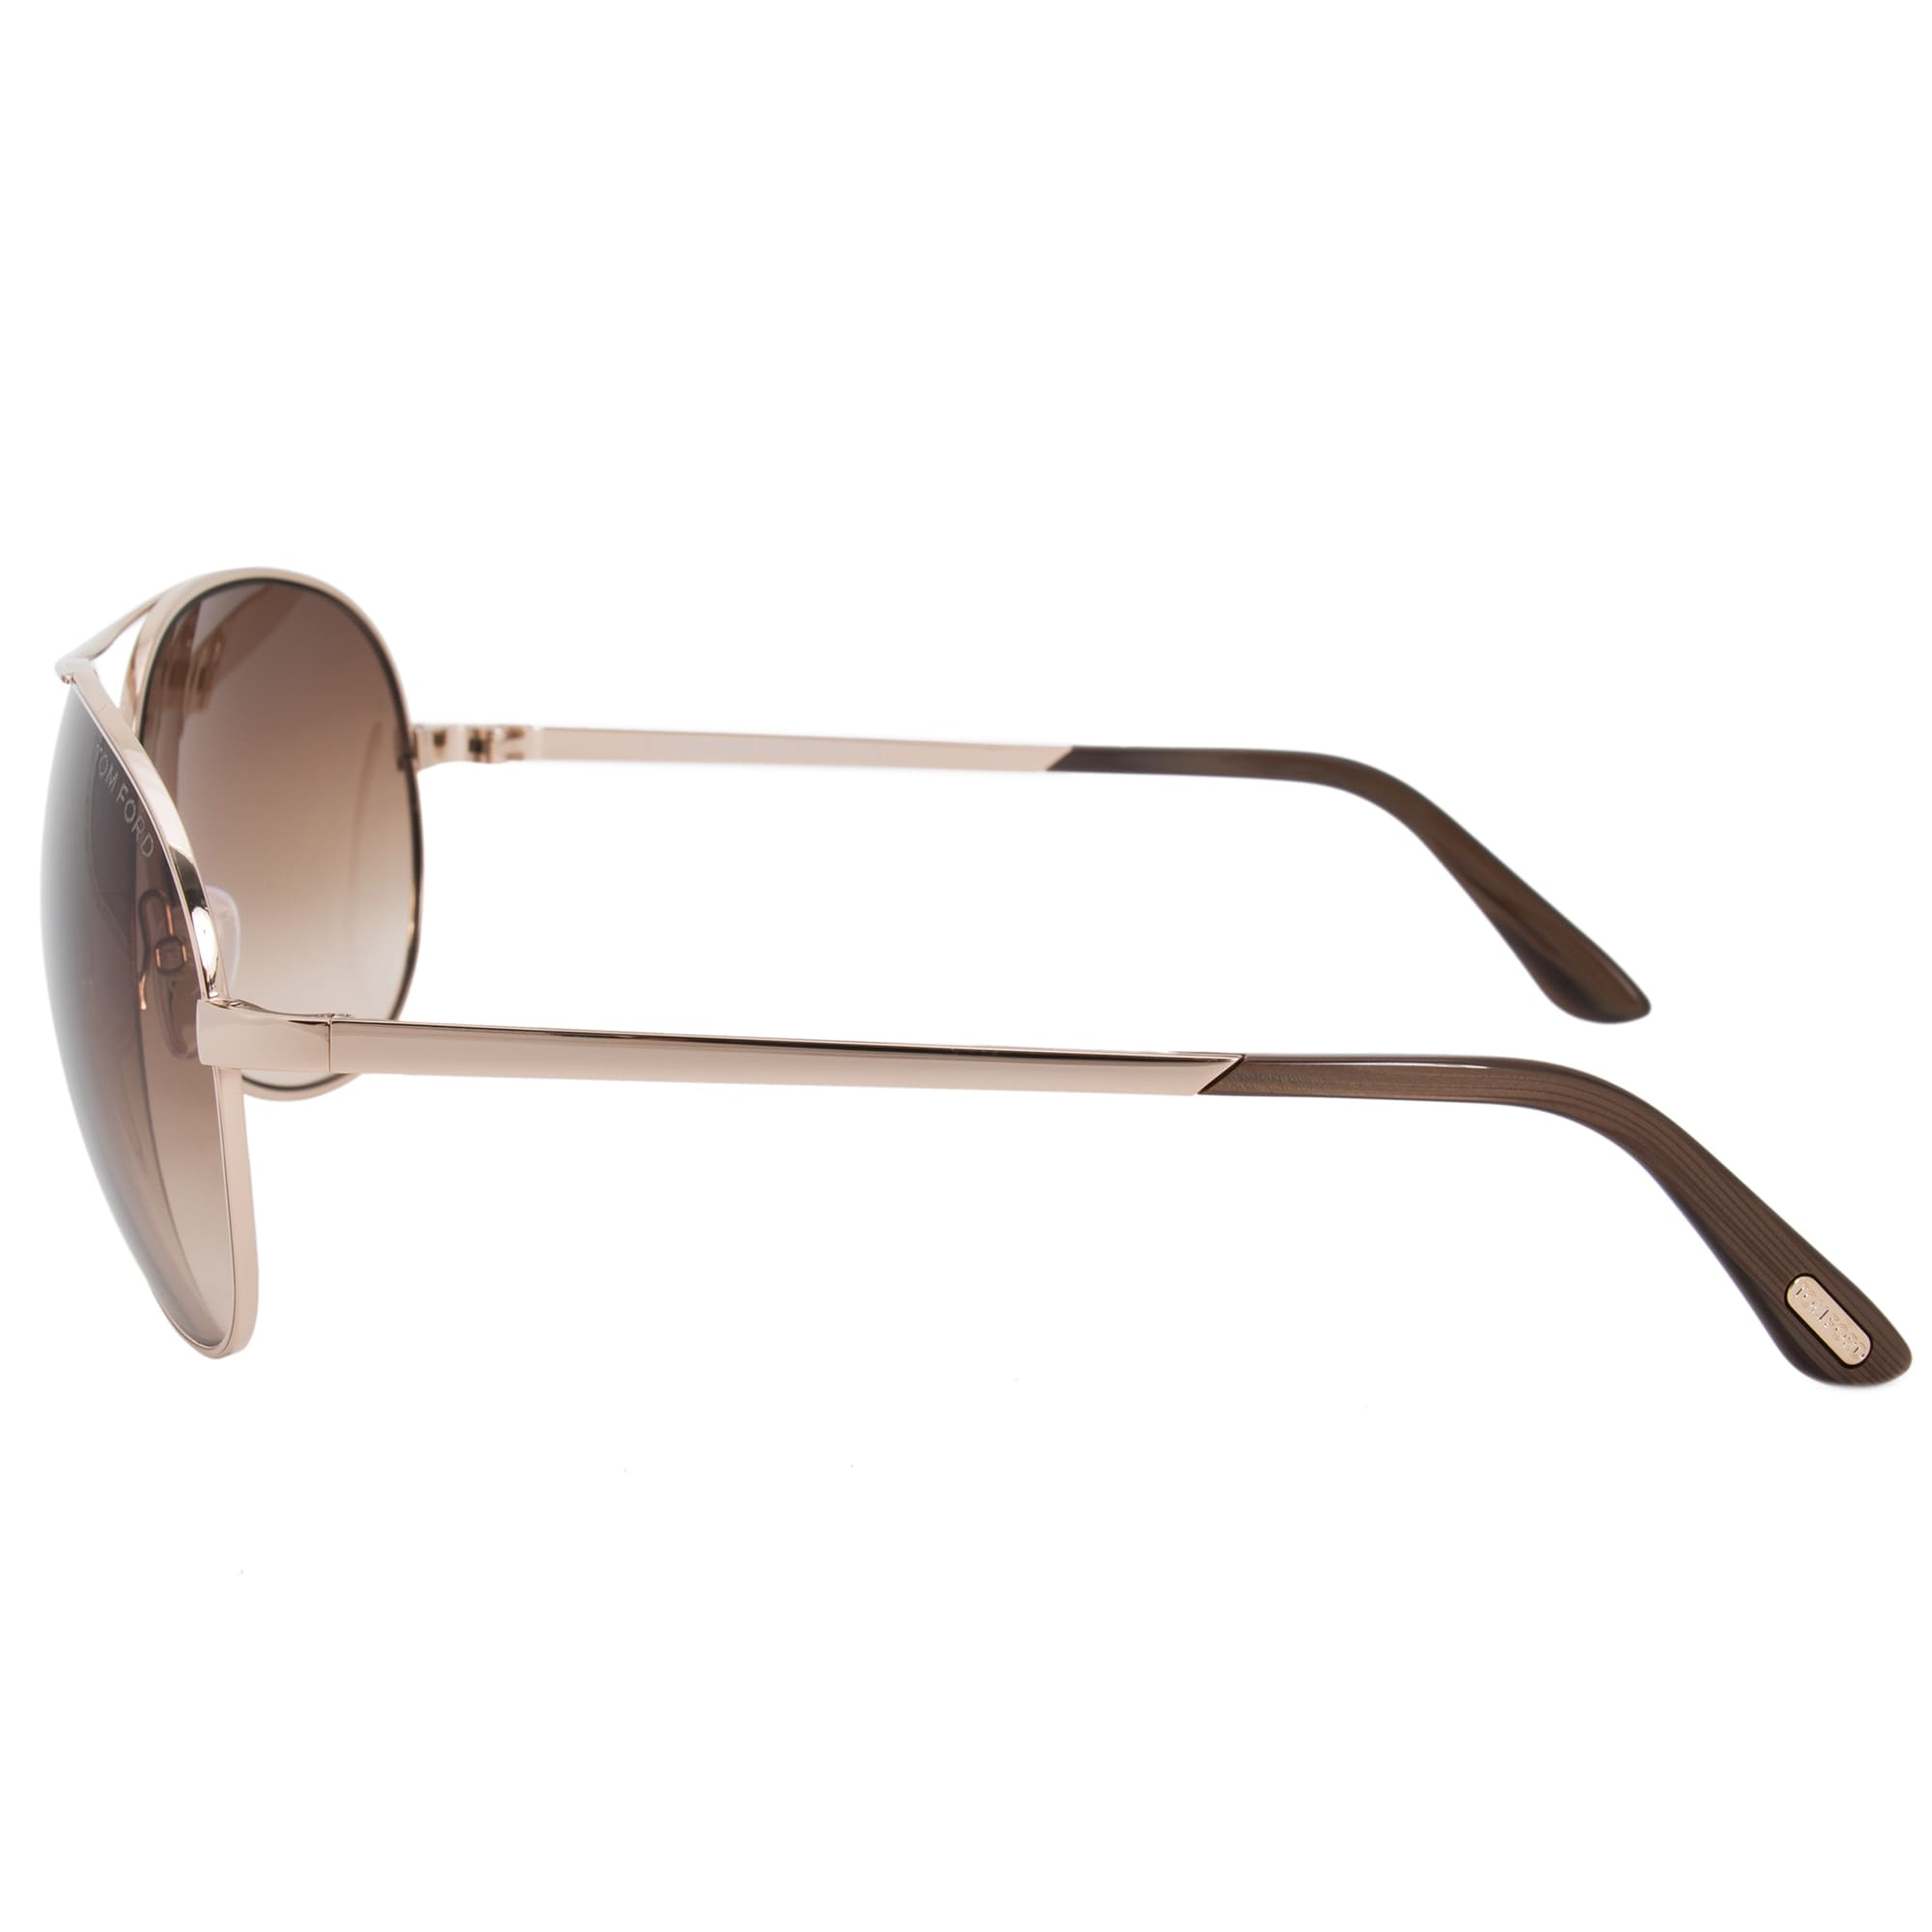 a53f9292a53 Shop Tom Ford Charles Aviator Sunglasses FT0035 772 62 - Free Shipping  Today - Overstock - 19622624